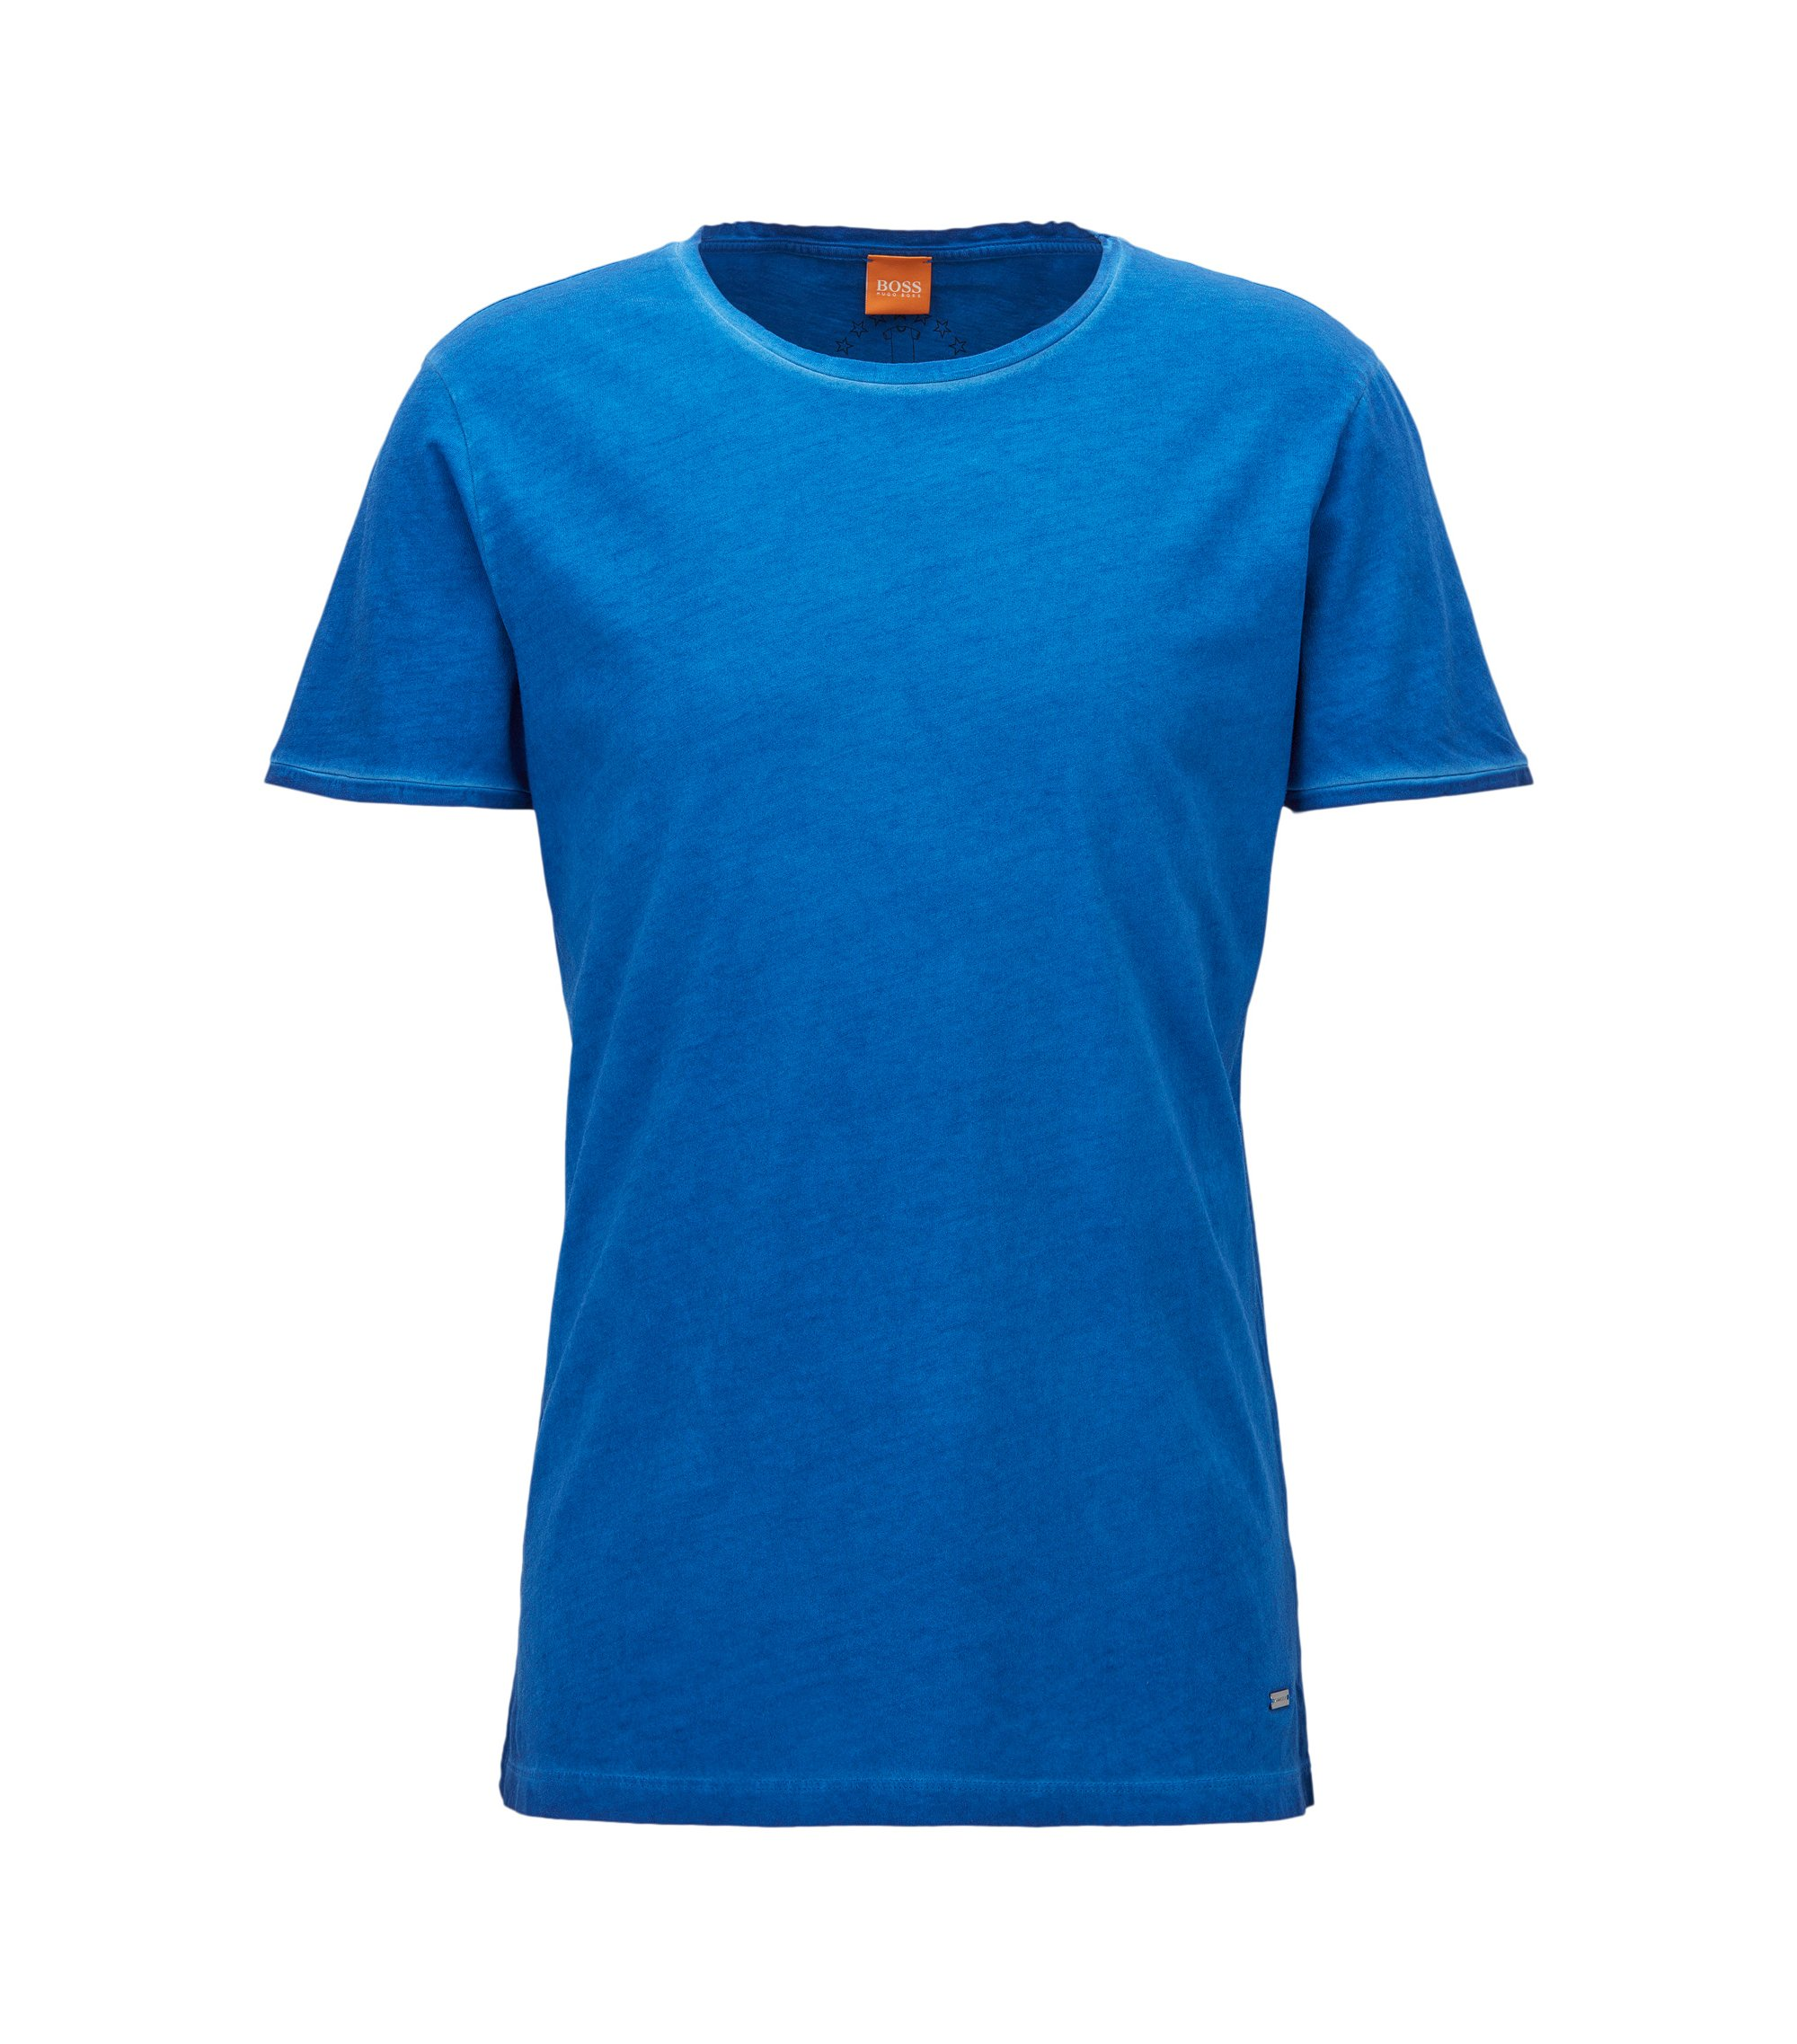 T-shirt Regular Fit en coton lavé Garment Washed, Bleu